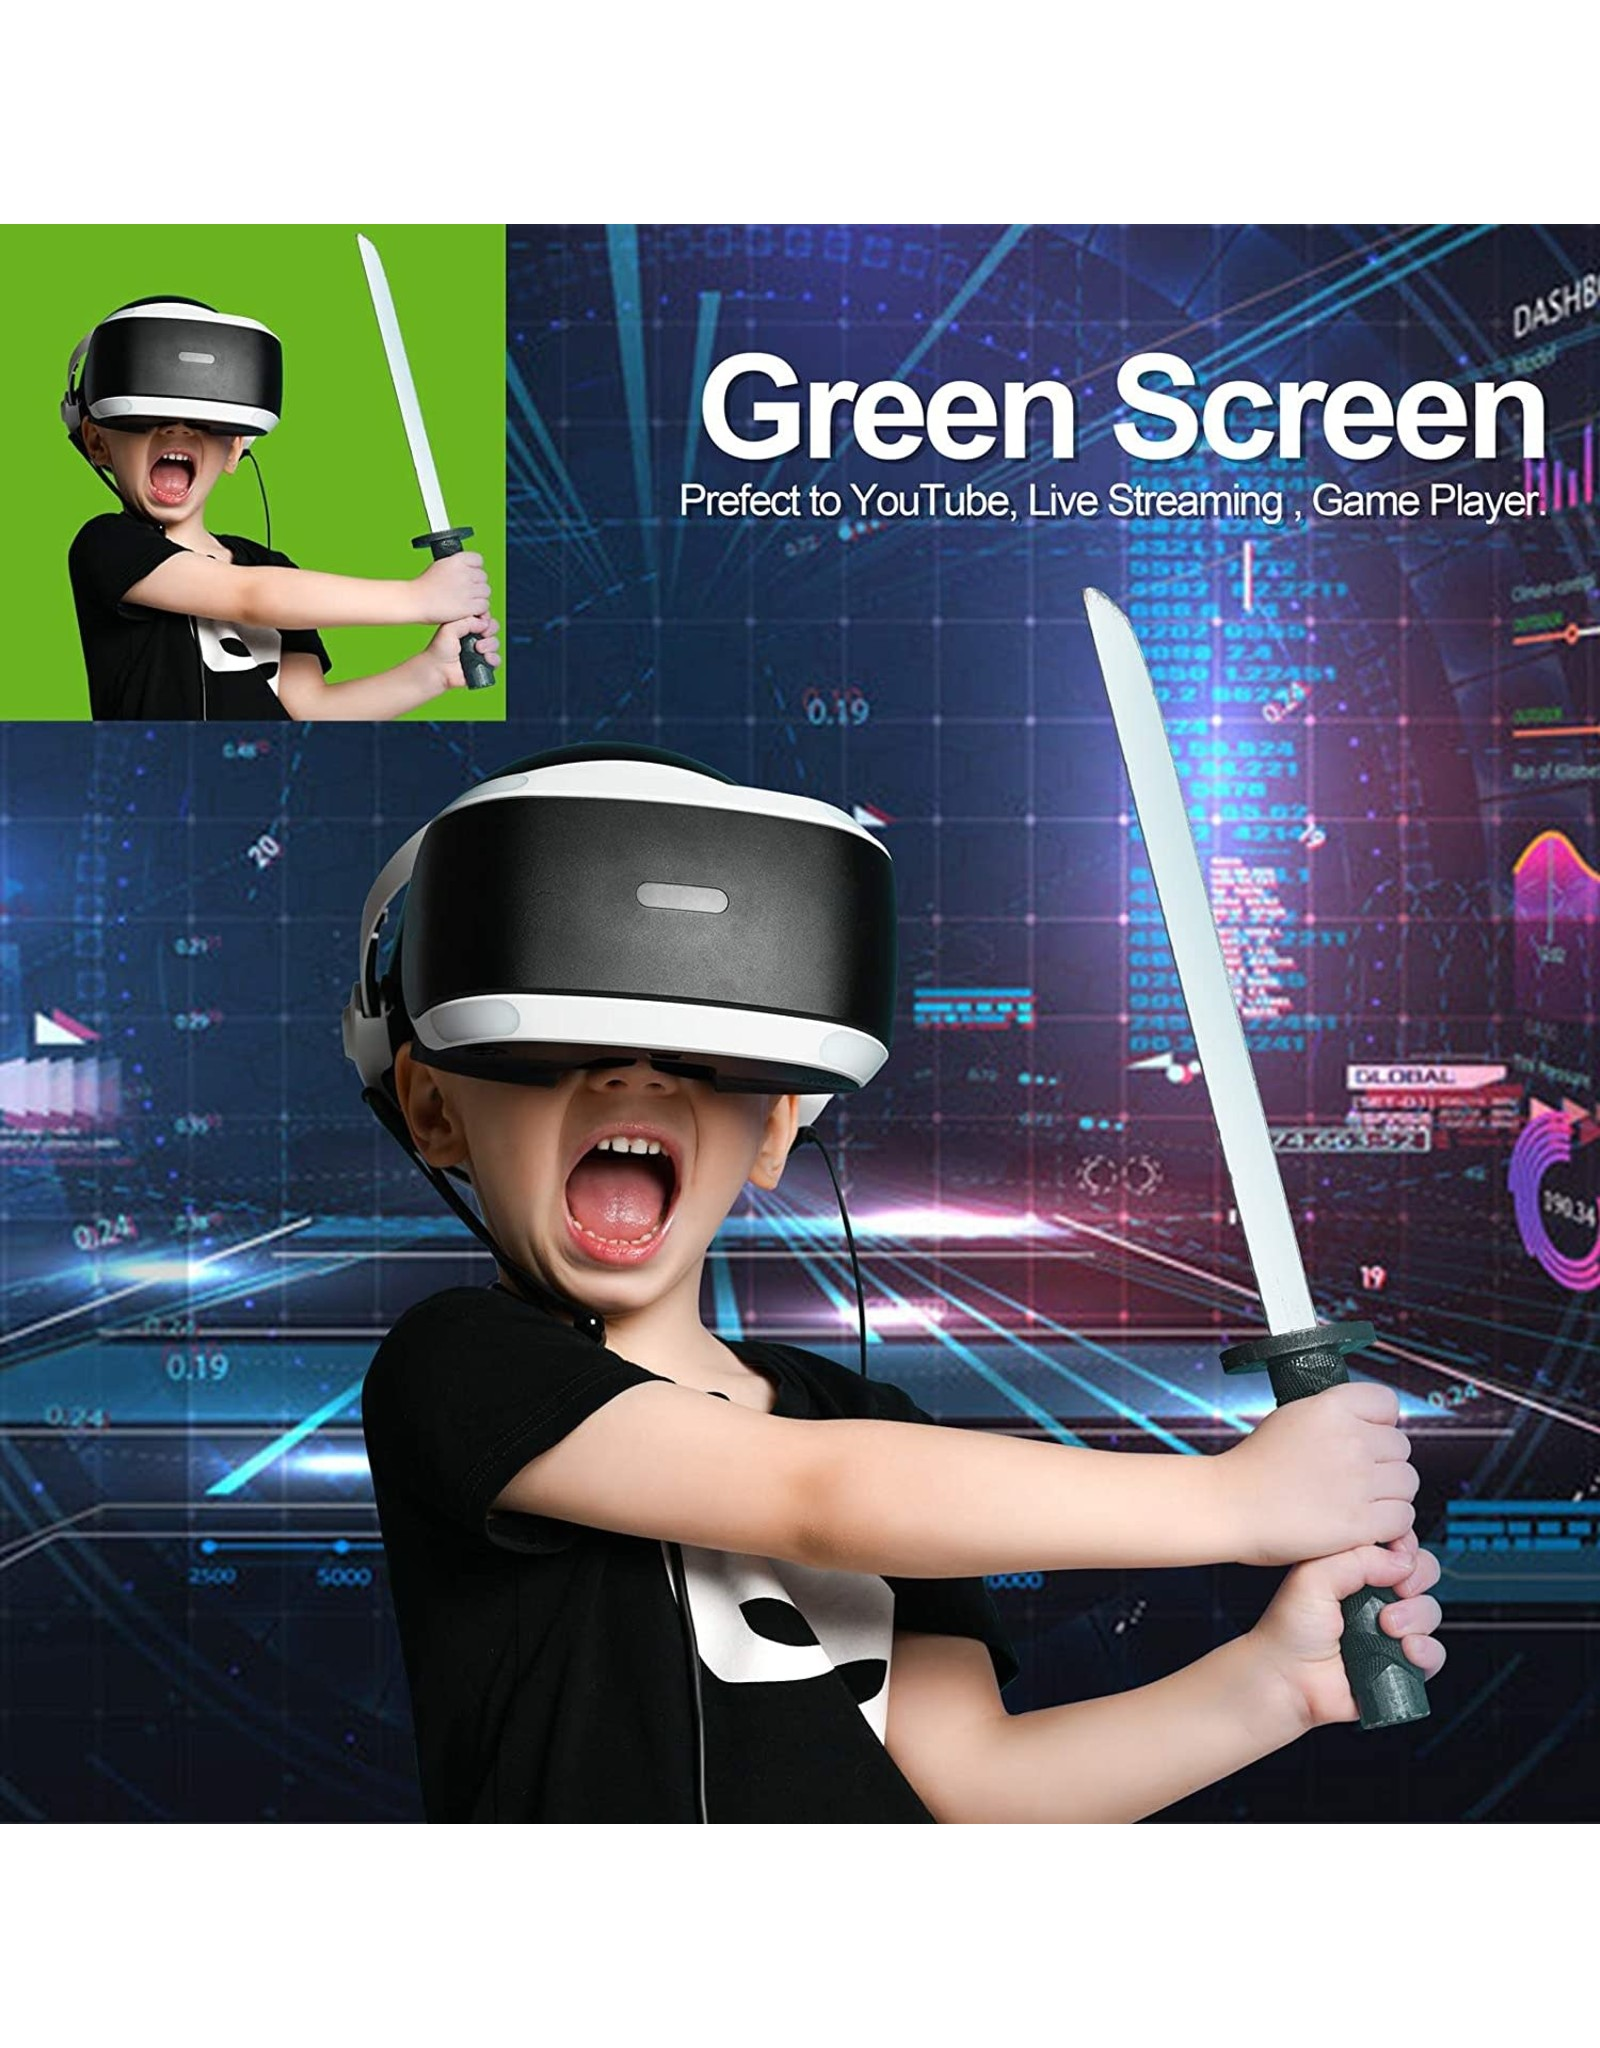 EMART Emart Green Screen, Collapsible Chromakey Panel for Photo Backdrop Video Studio, Portable Pull Up Wrinkle-Resistant Greenscreen Background, Auto-Locking Air Cushion Frame, Solid Safety Aluminium Base